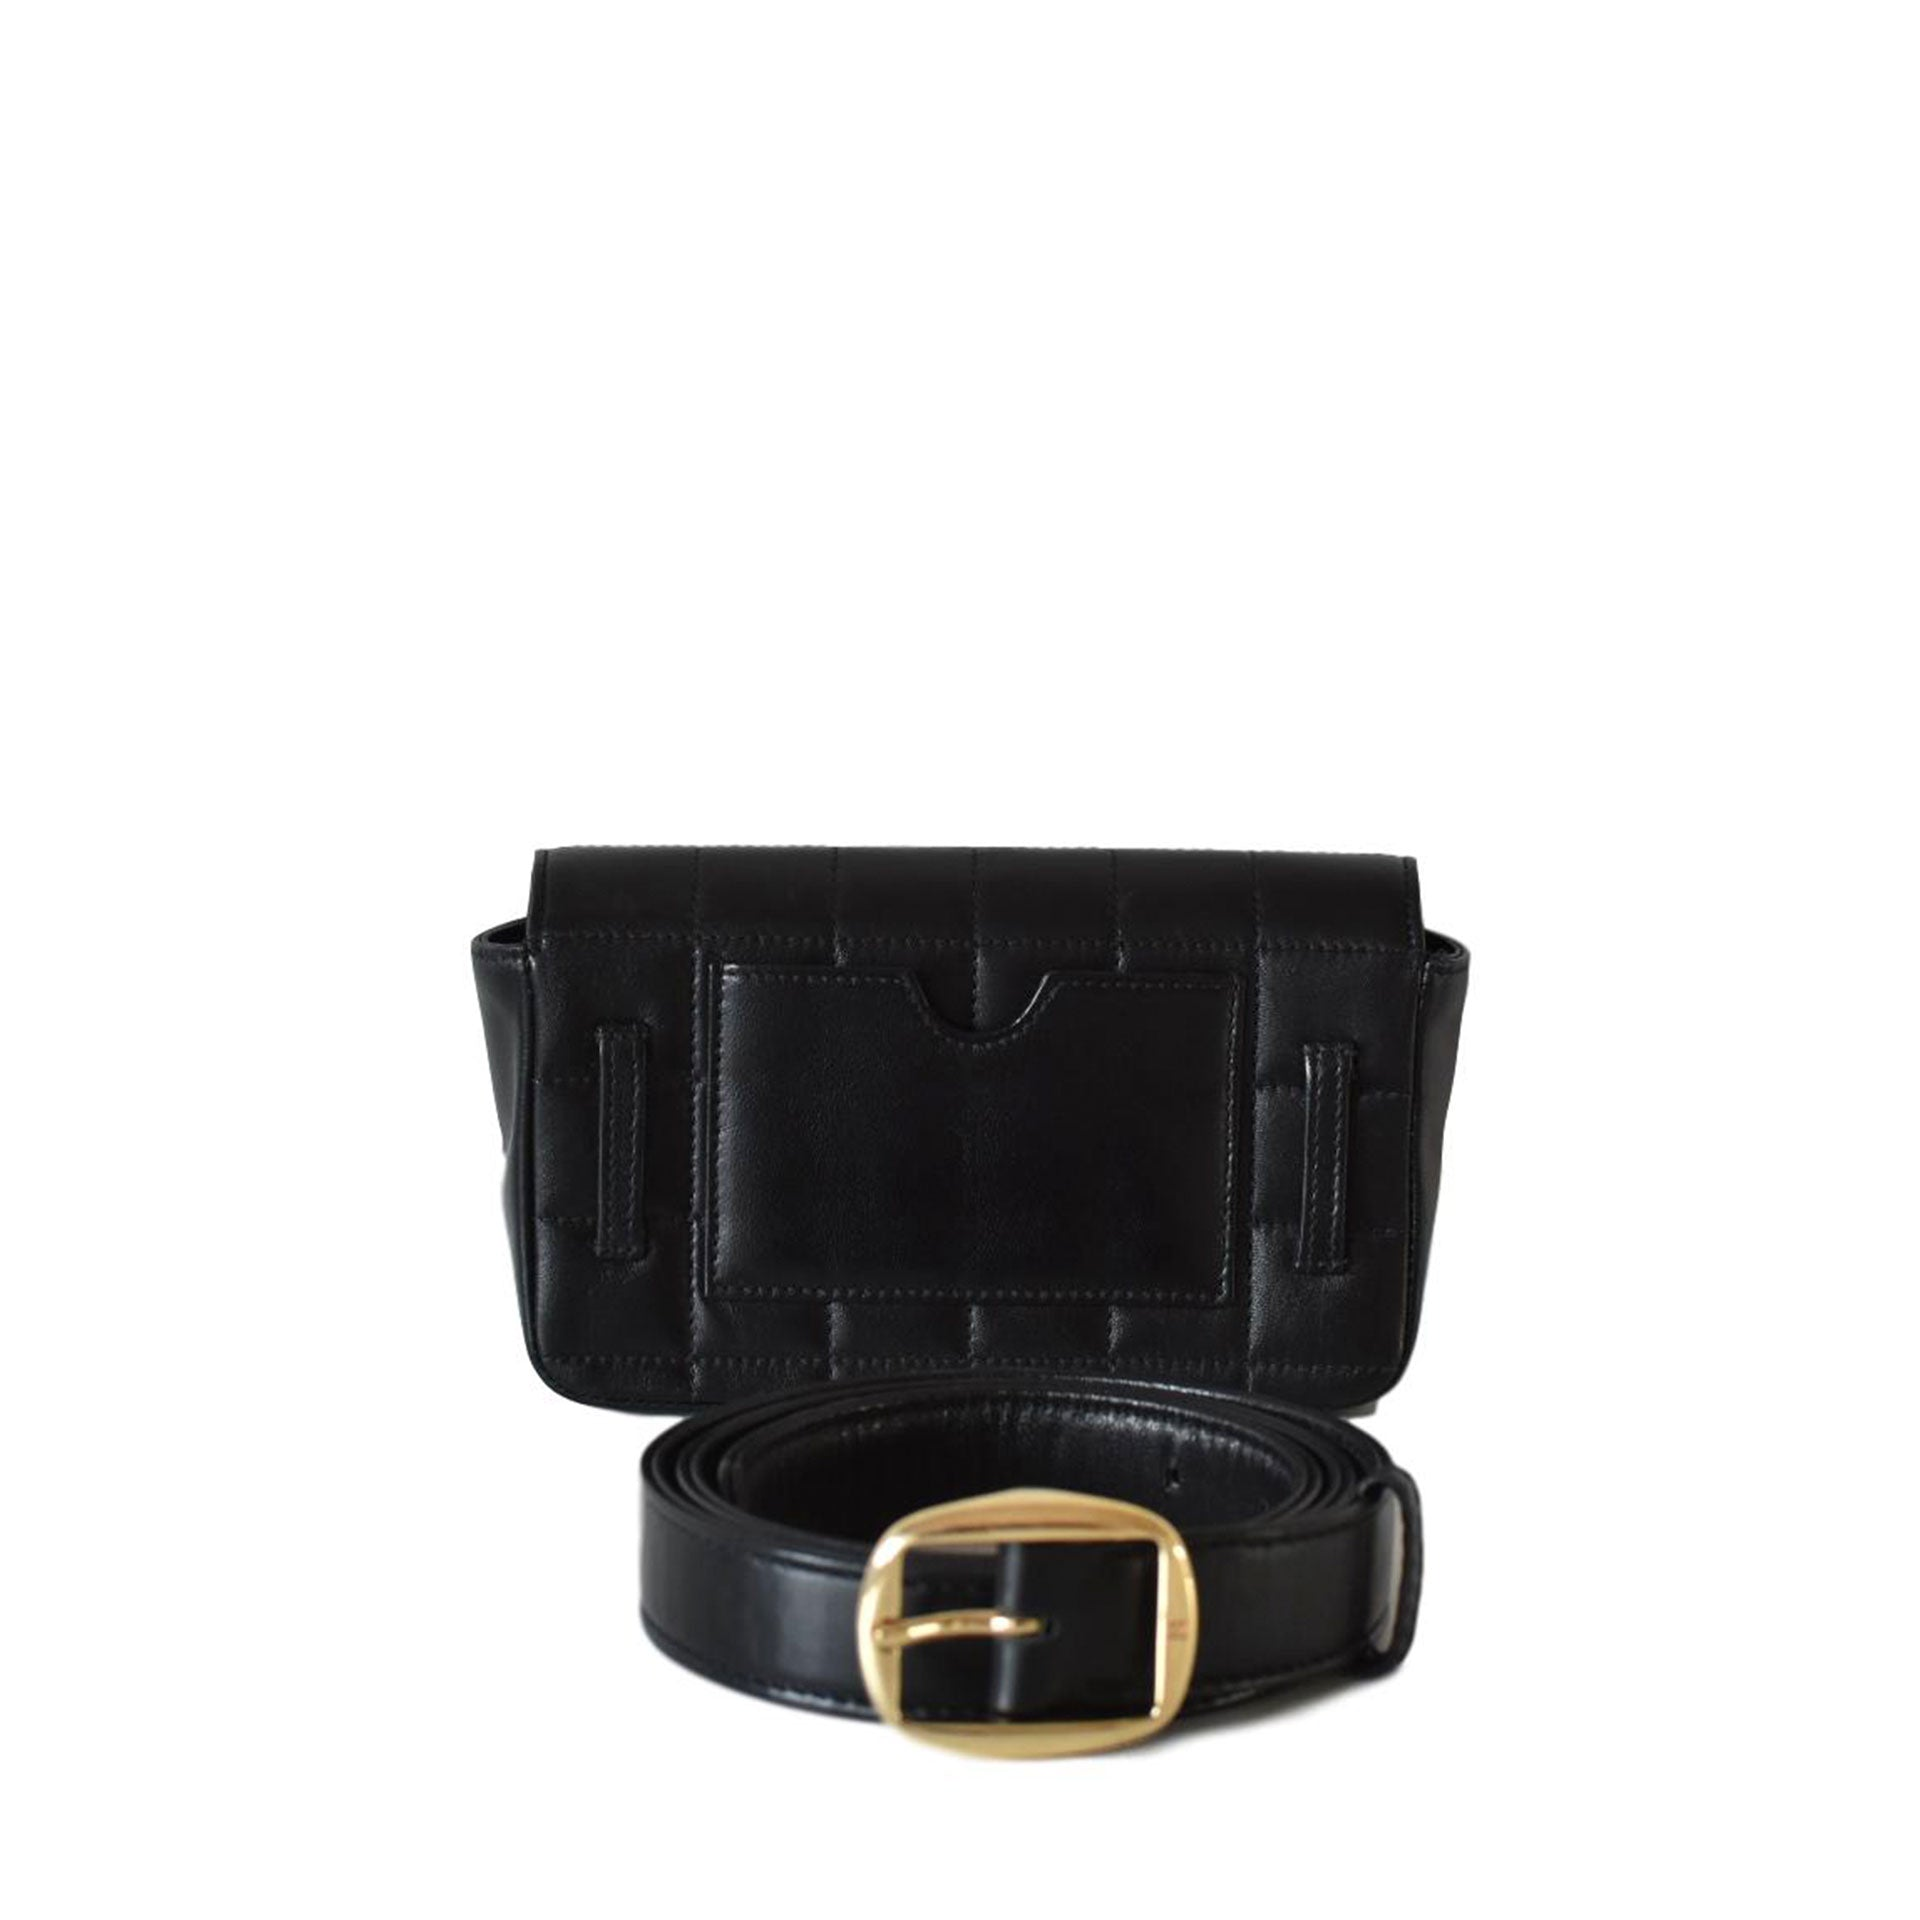 Chanel Vintage Square Quilted Fanny Pack Waist Bum Bag